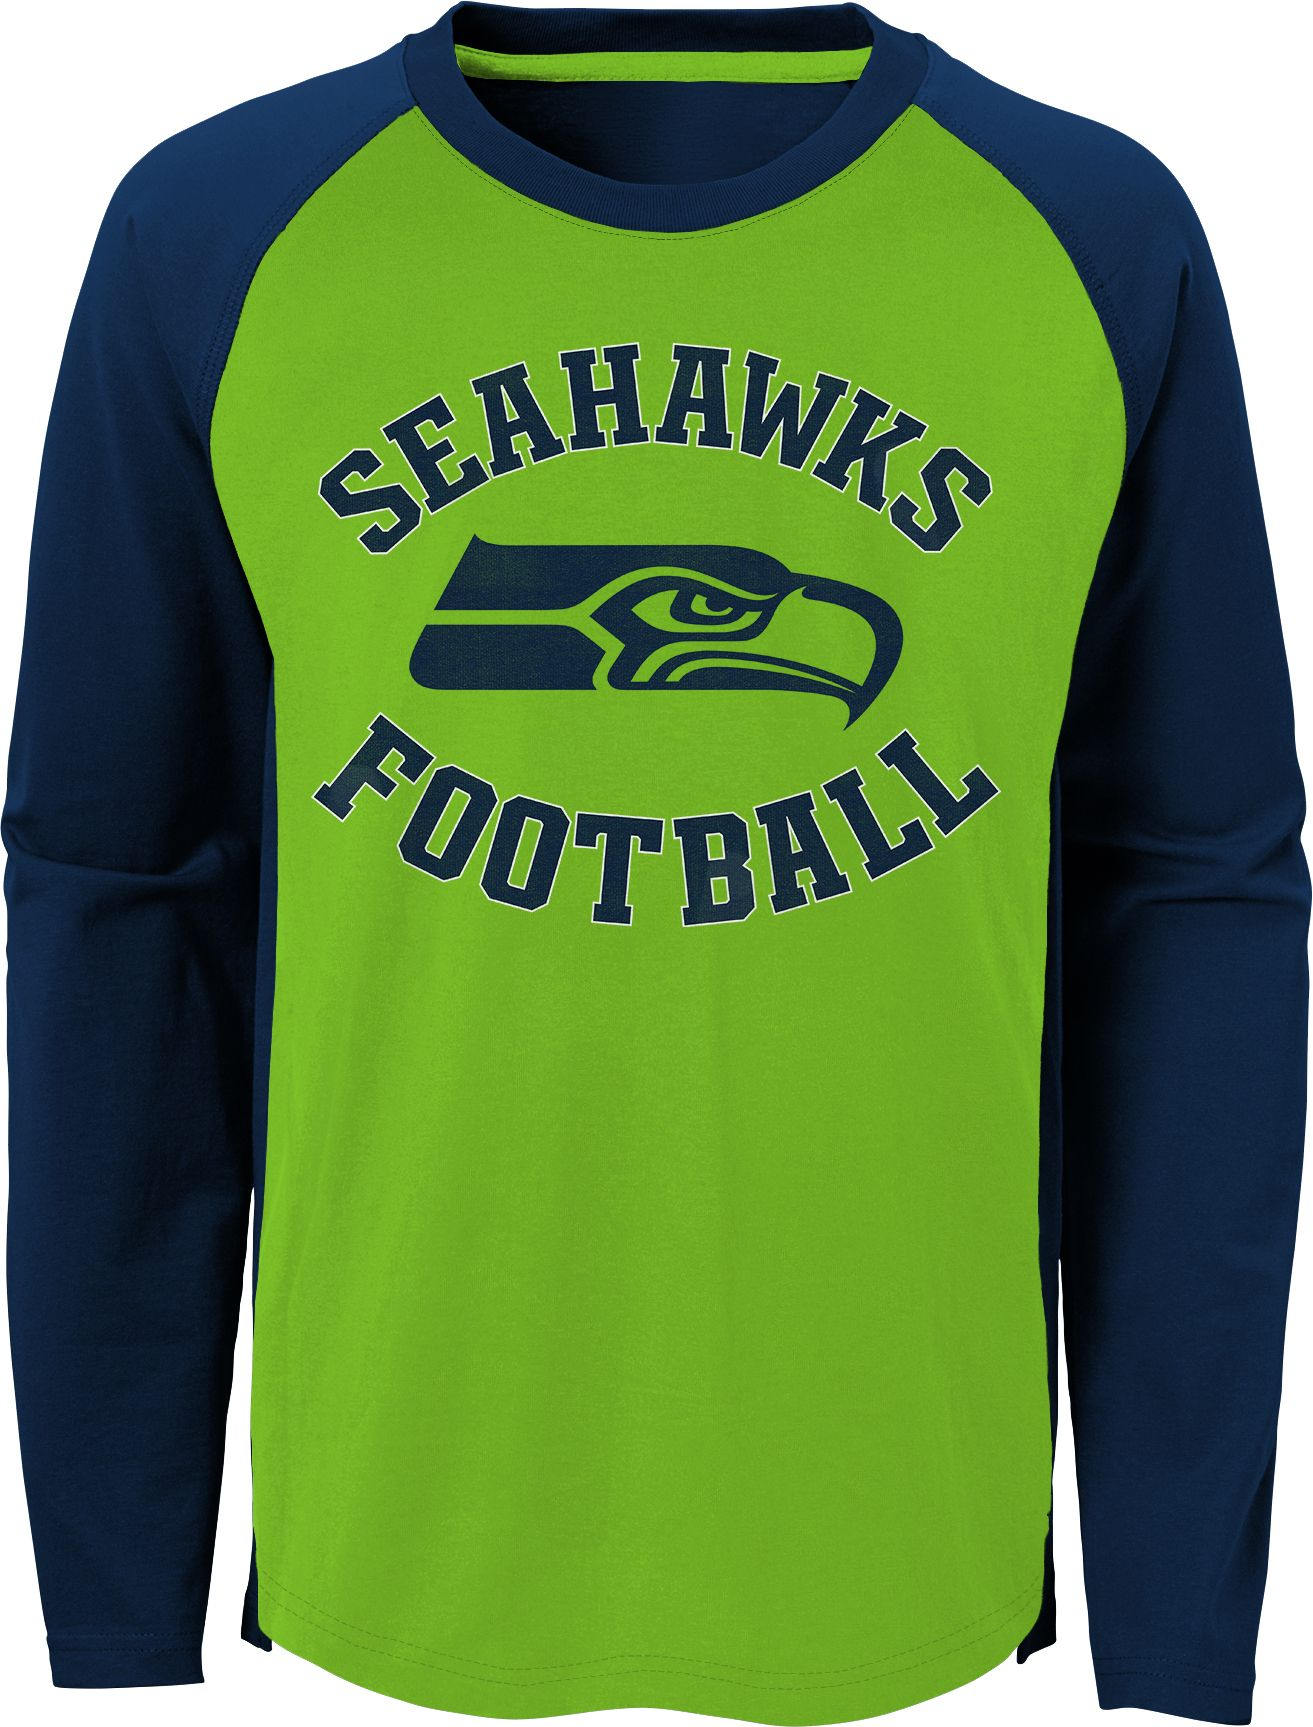 seattle seahawks t shirts for toddlers